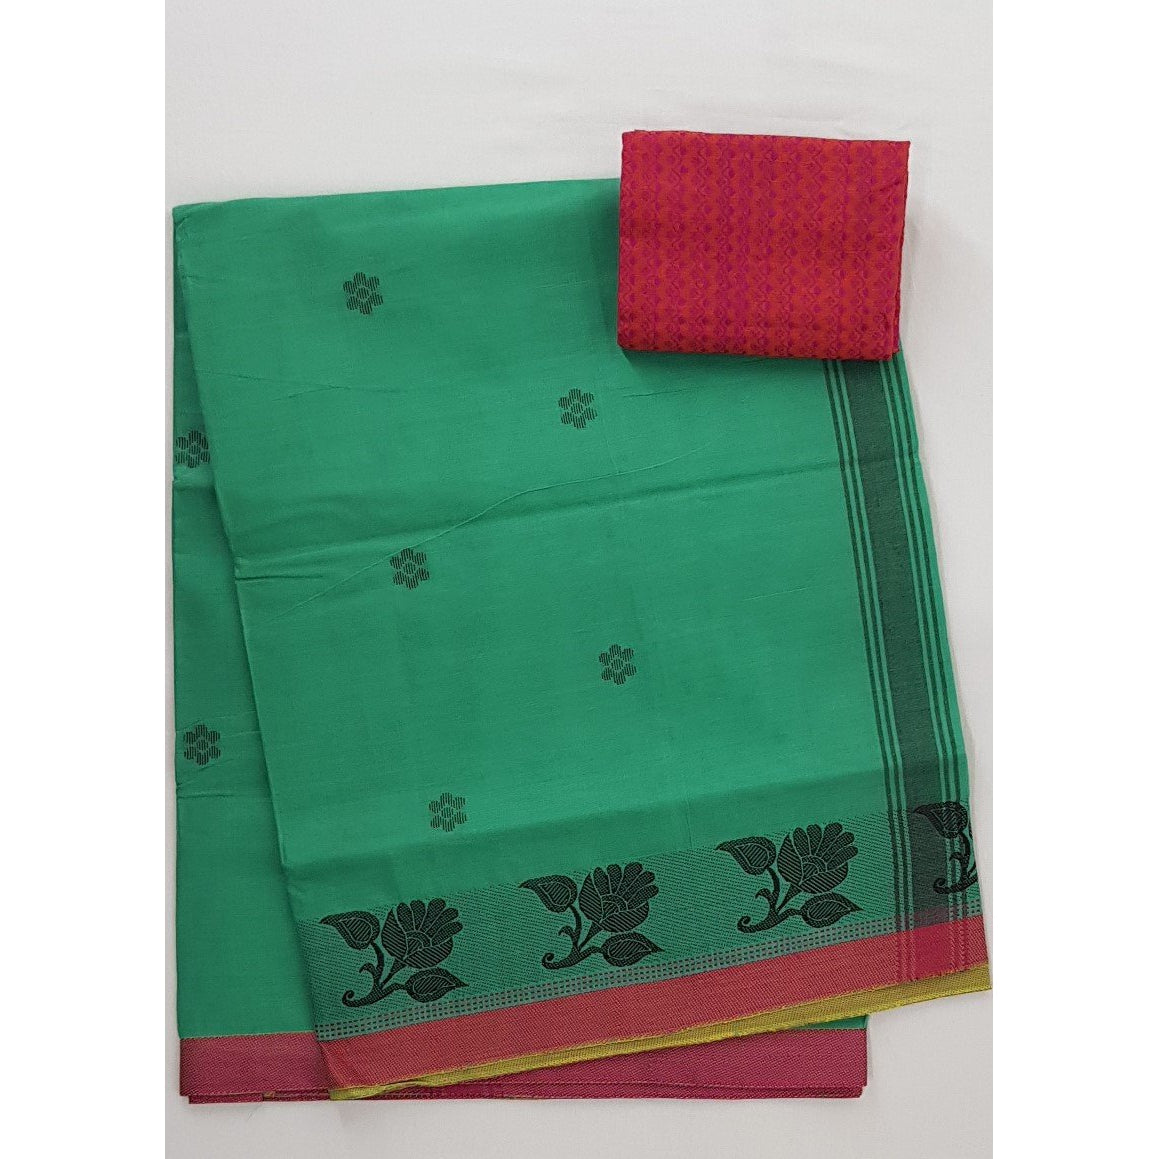 Light Kiwi Color Venkatagiri Cotton Saree - Vinshika